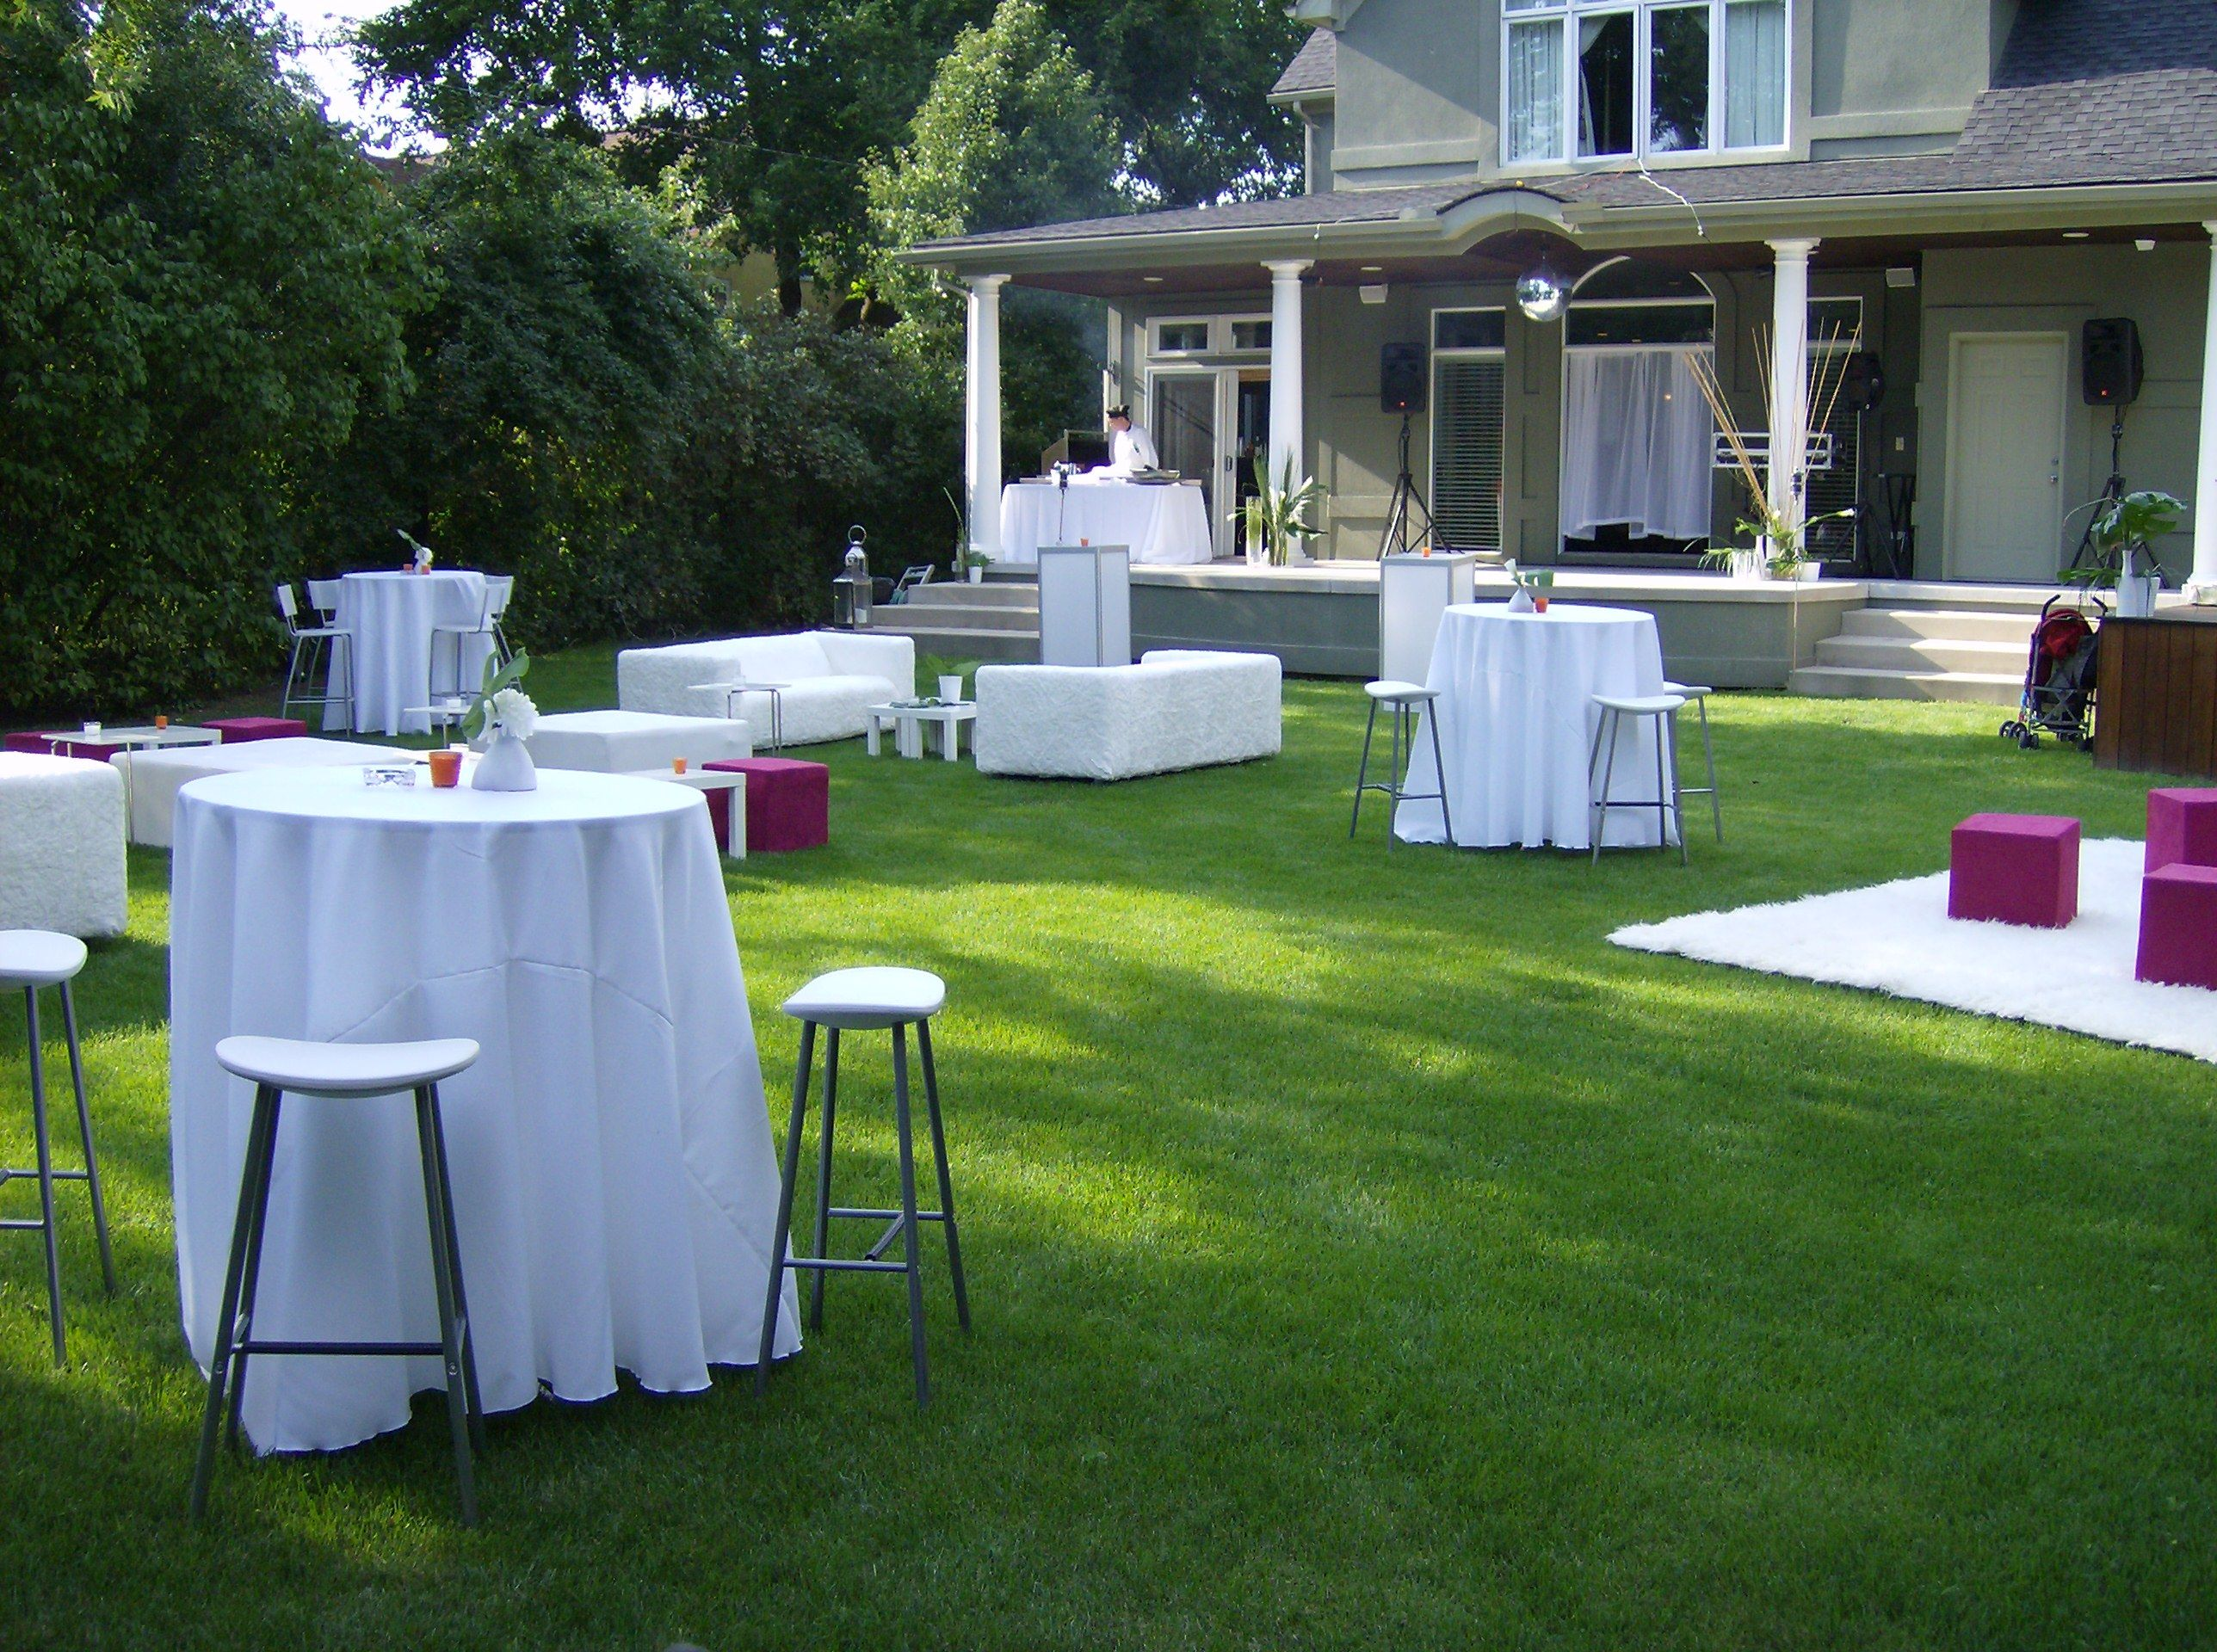 Superior Outdoor Cocktail Party Ideas Part - 1: Backyard Cocktail Party